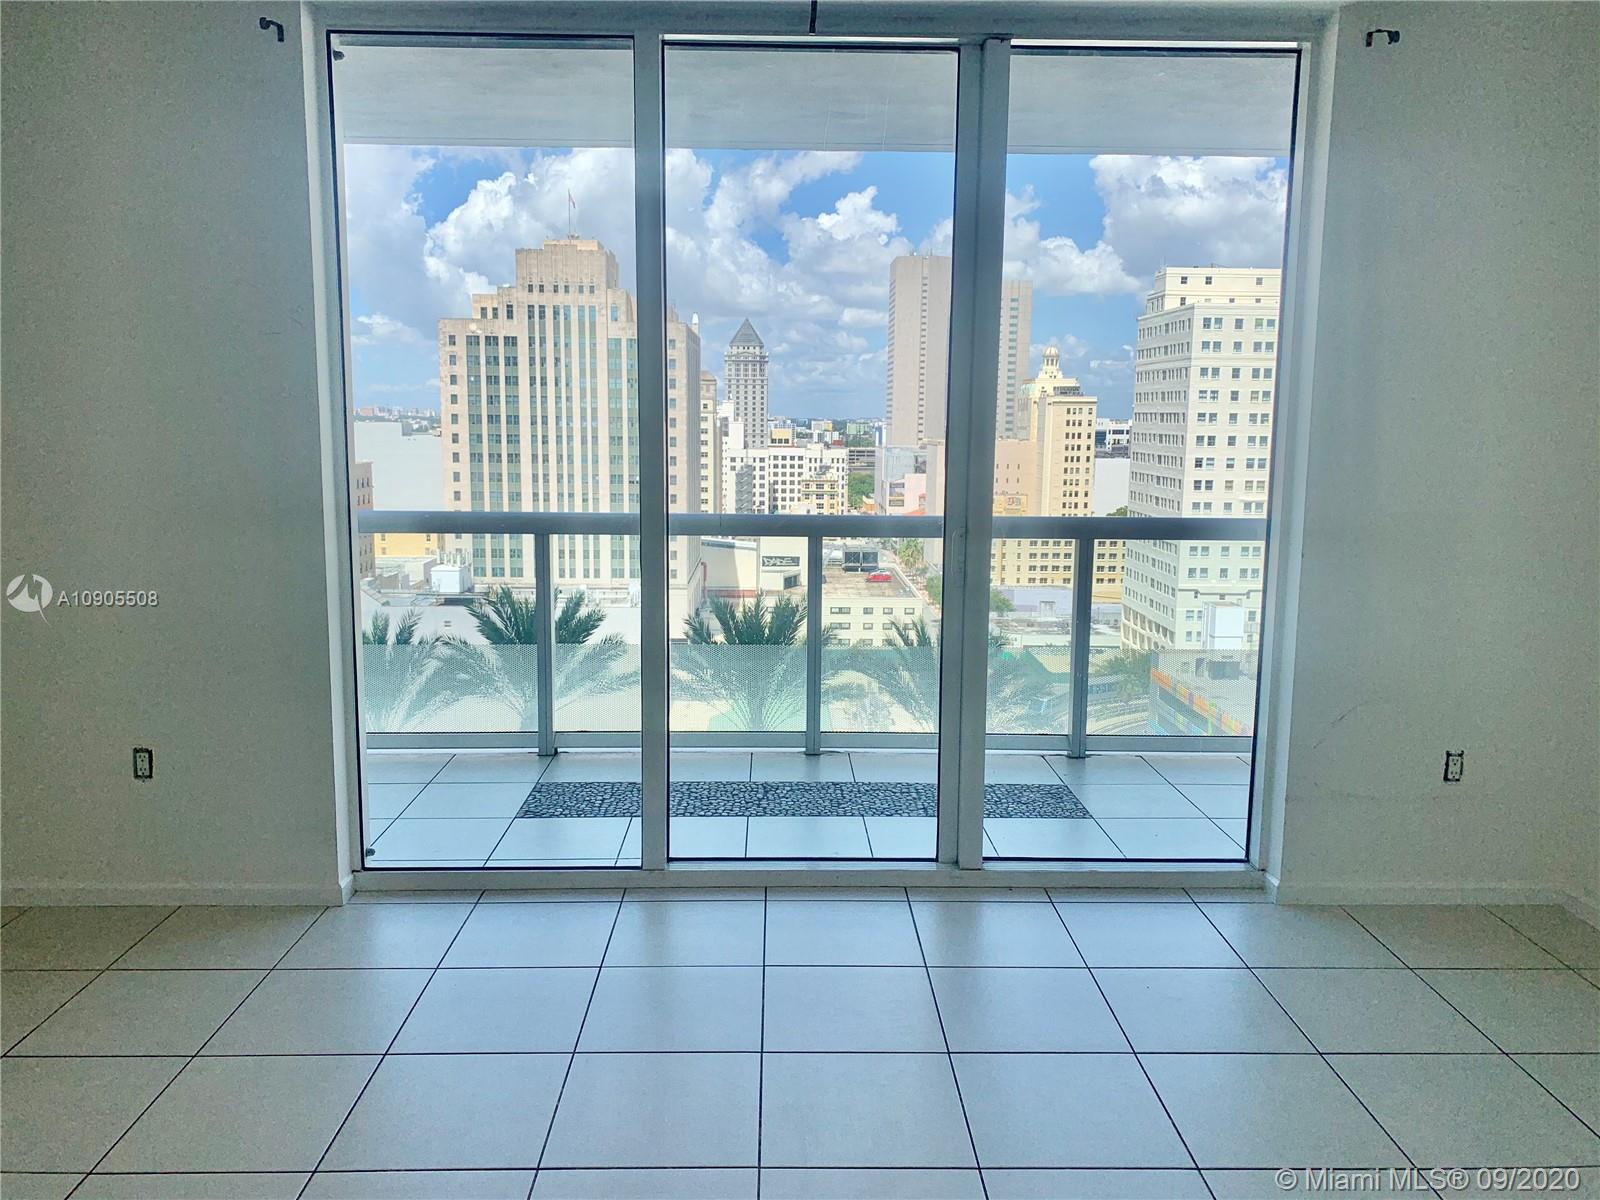 Live in the heart of Downtown Miami walking distance to the best restaurants and shopping. Great studio at 50 Biscayne with beautiful city and sunset views. Tile floors throughout, stainless steel appliances, walk in closet and large balcony. Washer and dryer inside the unit, assigned parking space. Full service building with top of the line amenities including lap pool, fitness center, business center, spa and 24 hour front desk and valet. Walk across to Bayfront Park, Museum Park, Arena and Bayside.